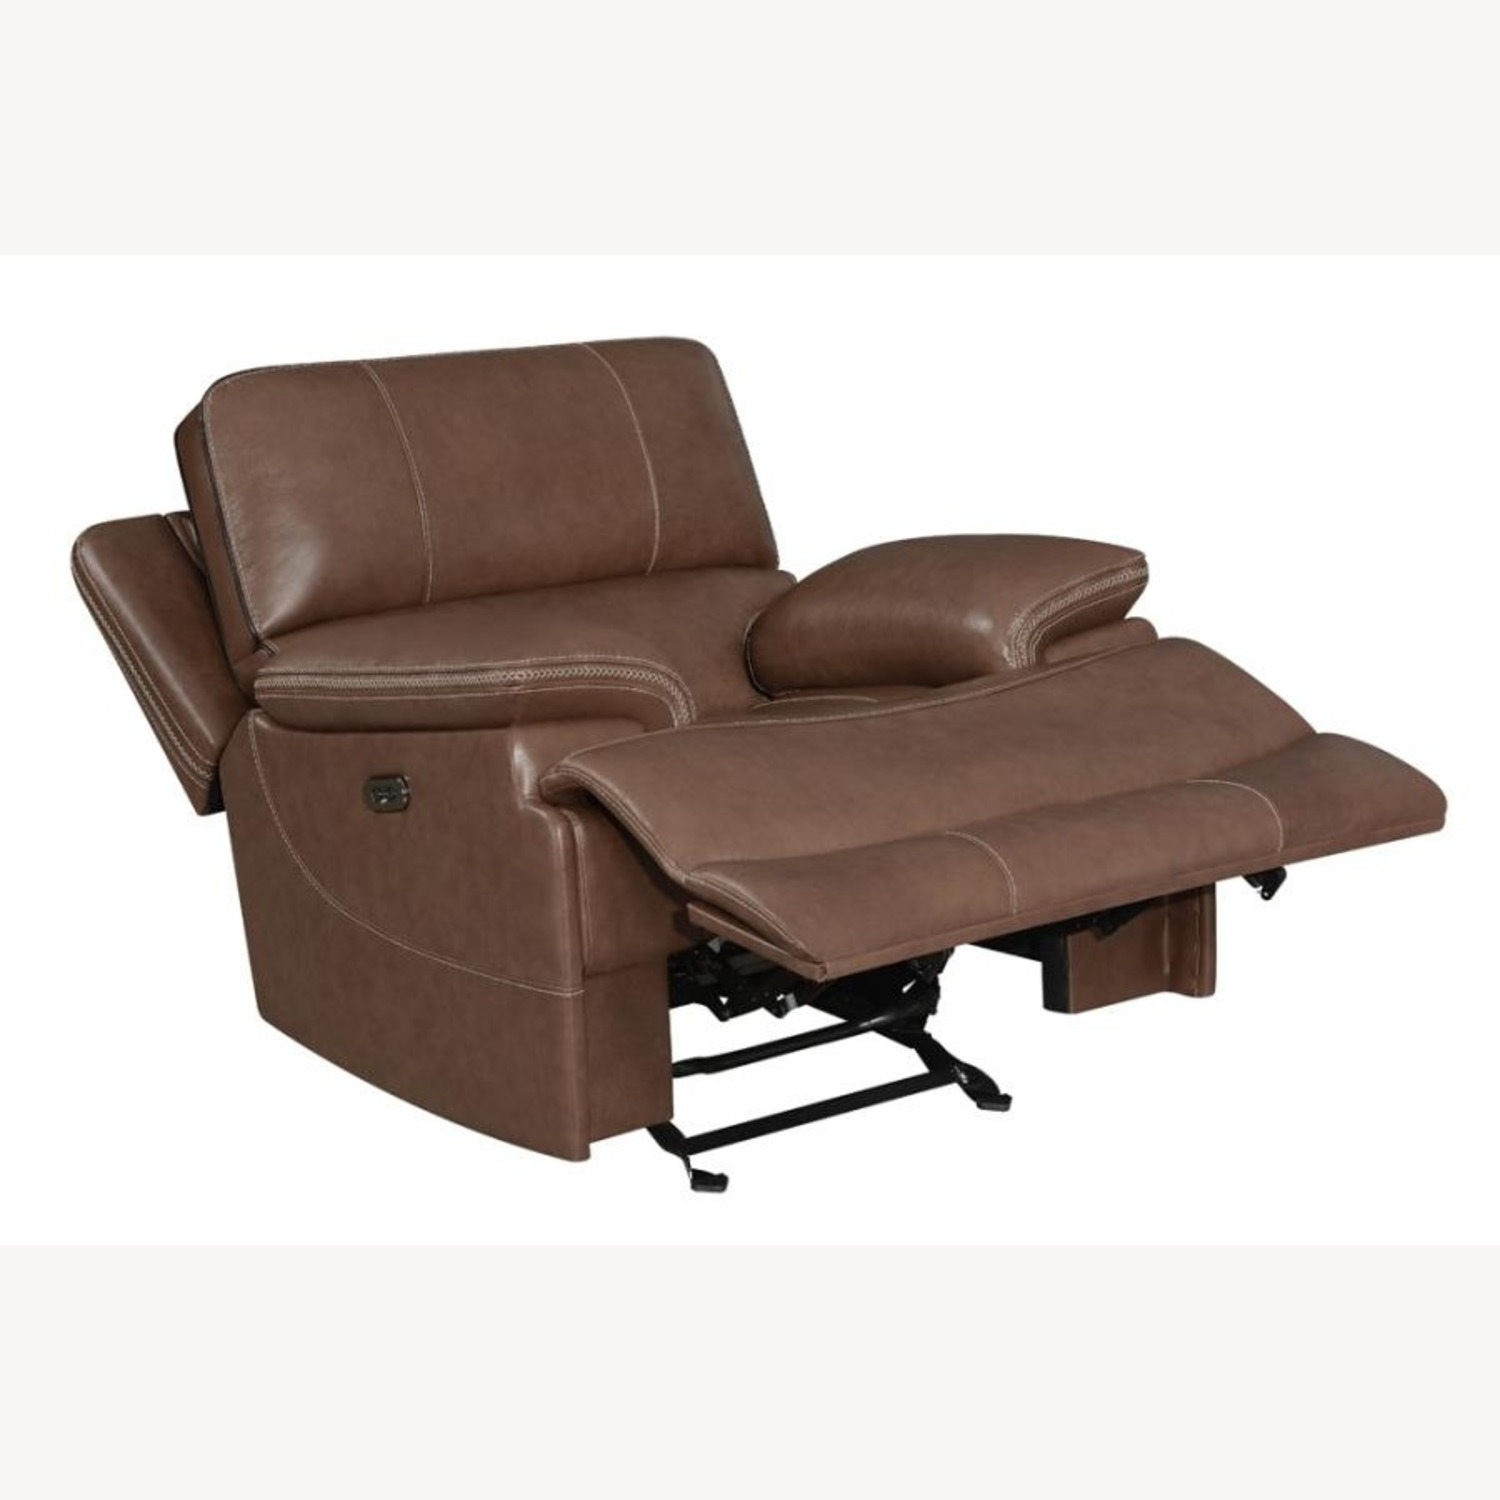 Power Recliner In Saddle Brown Leather - image-1